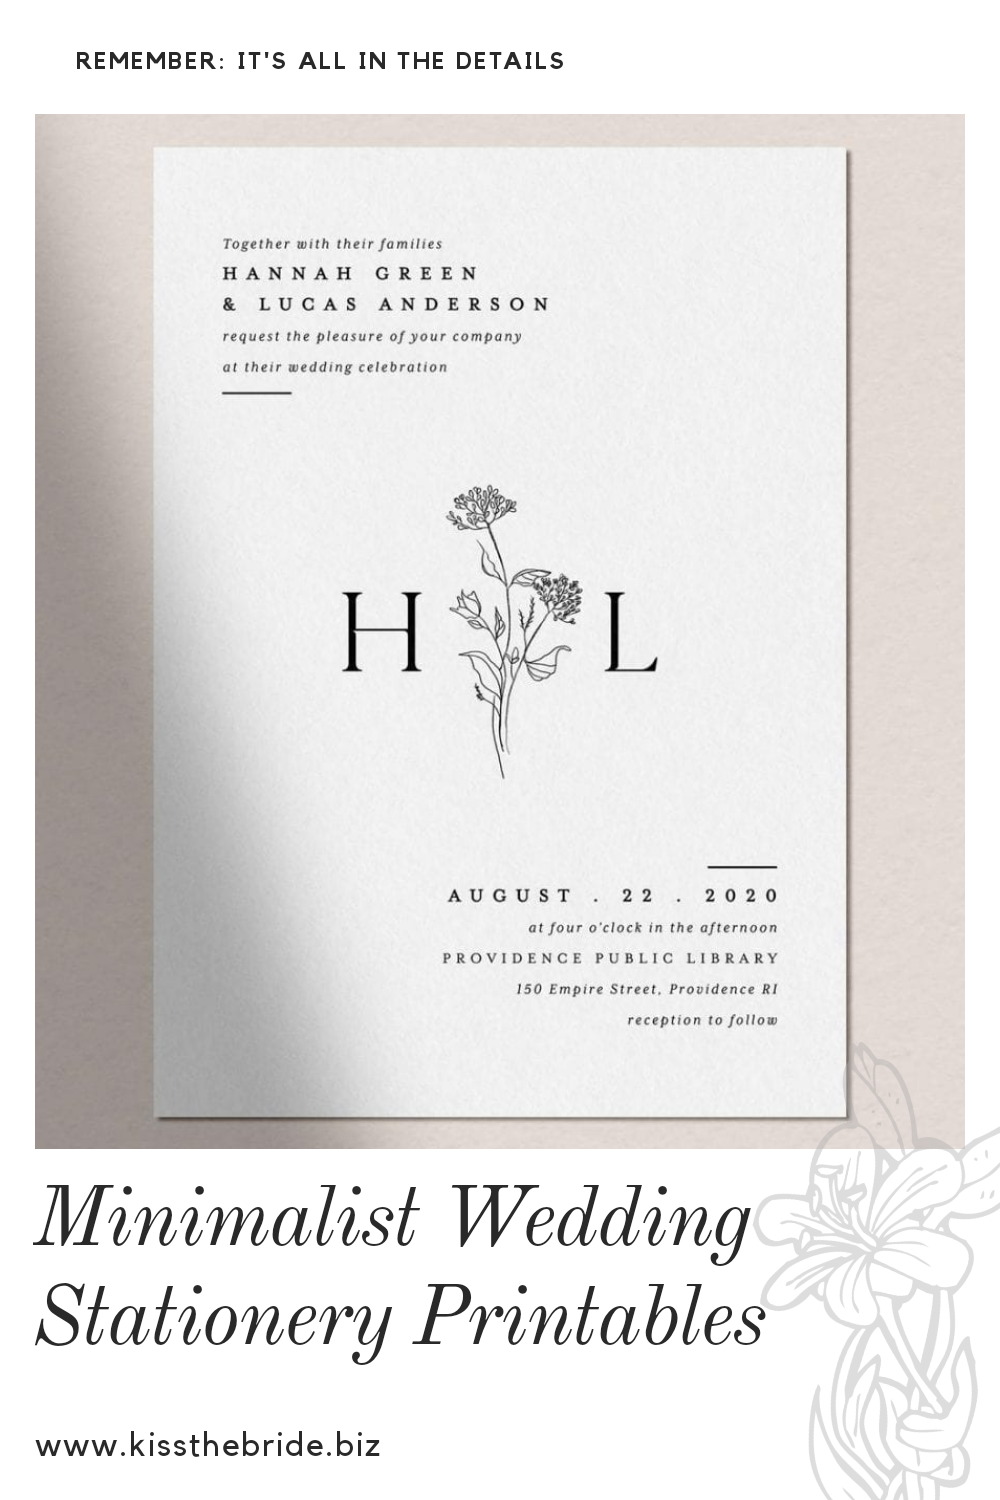 Minimalist wedding stationery